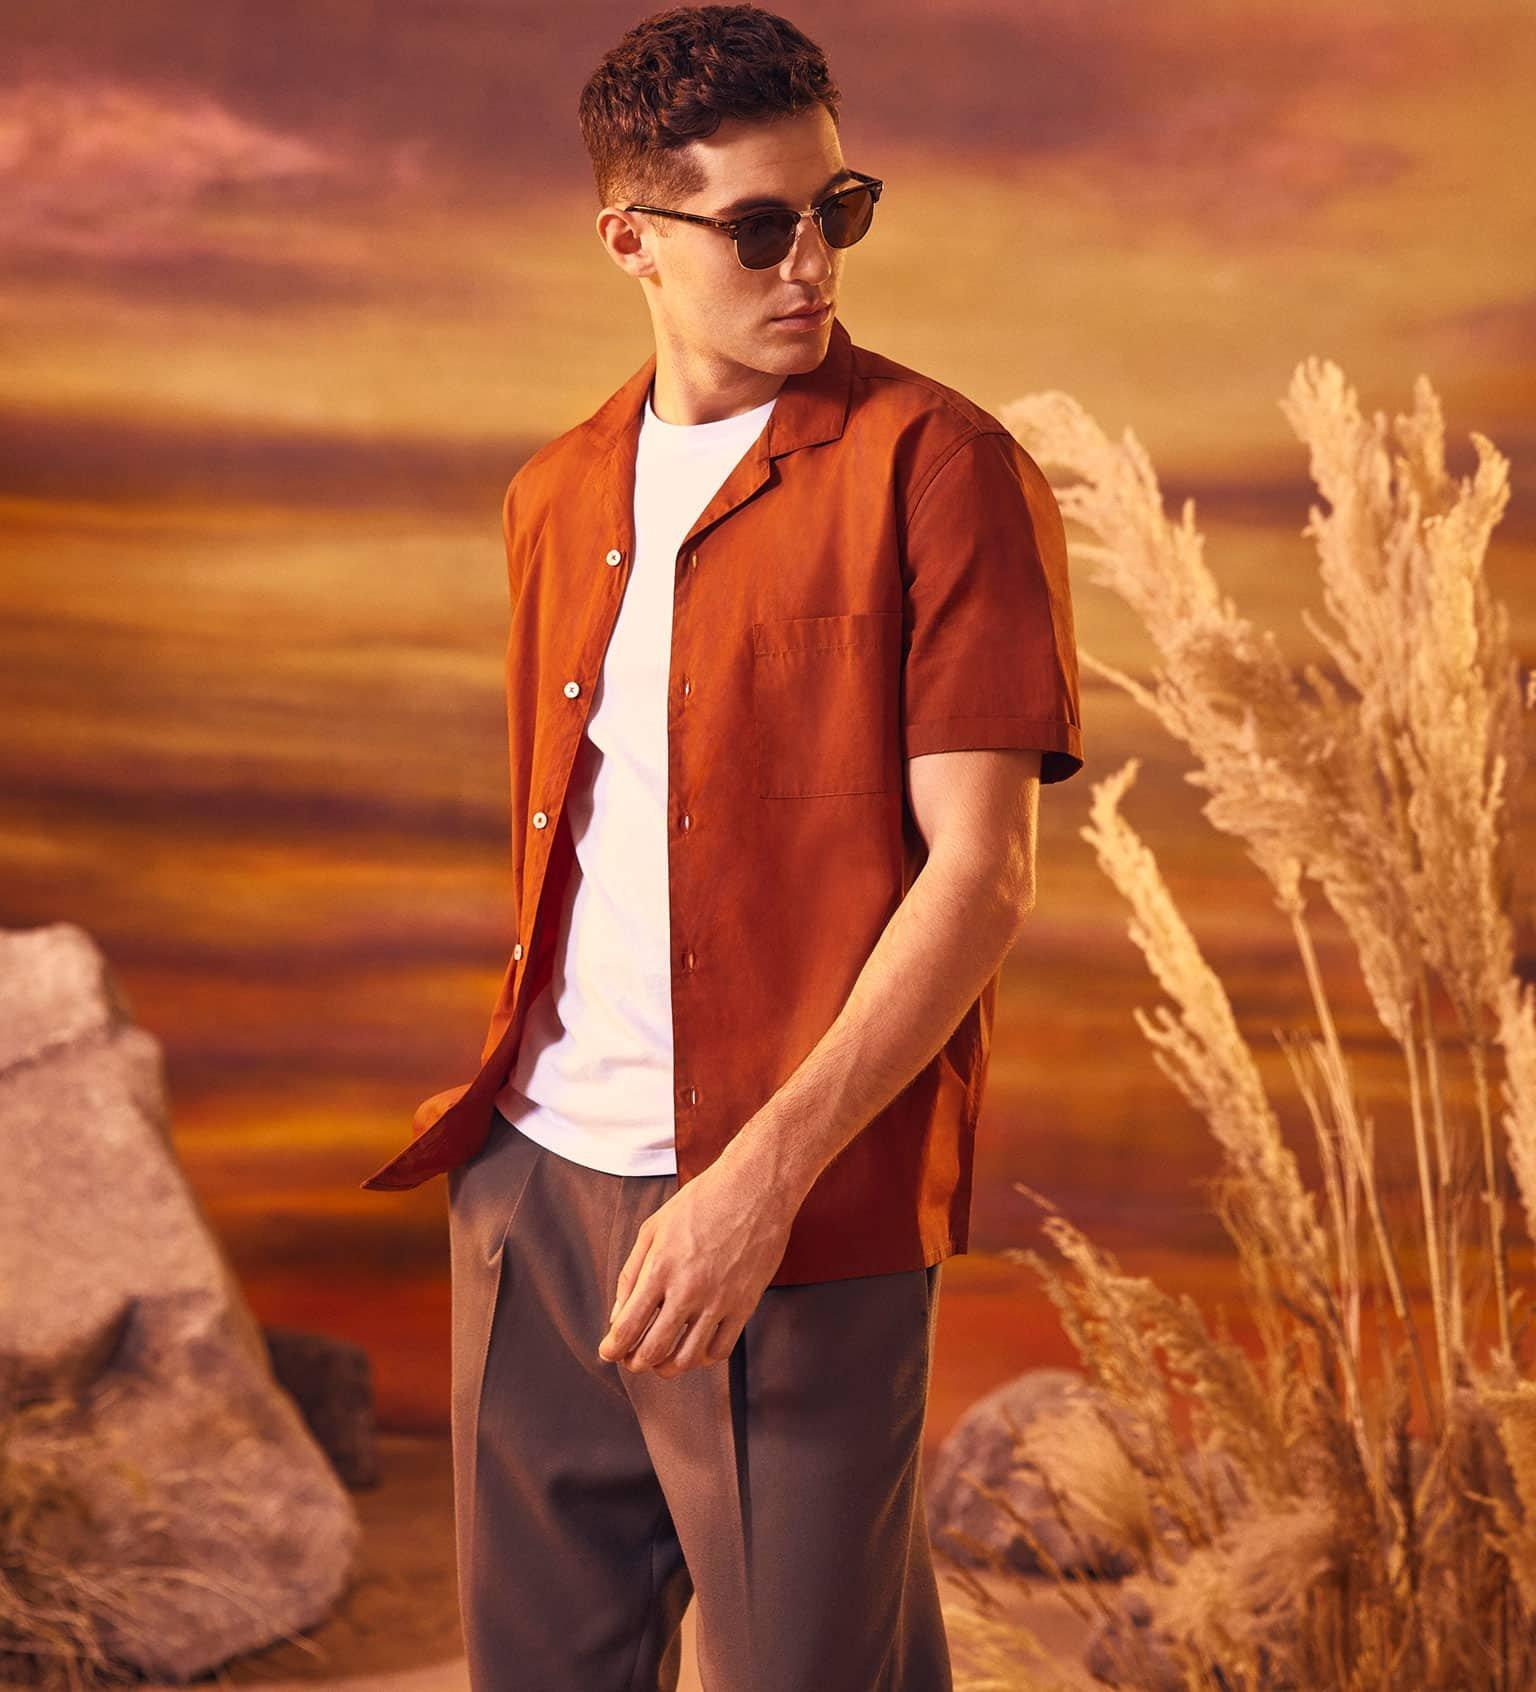 Model wears orange shirt over white t-shirt with brown trousers.